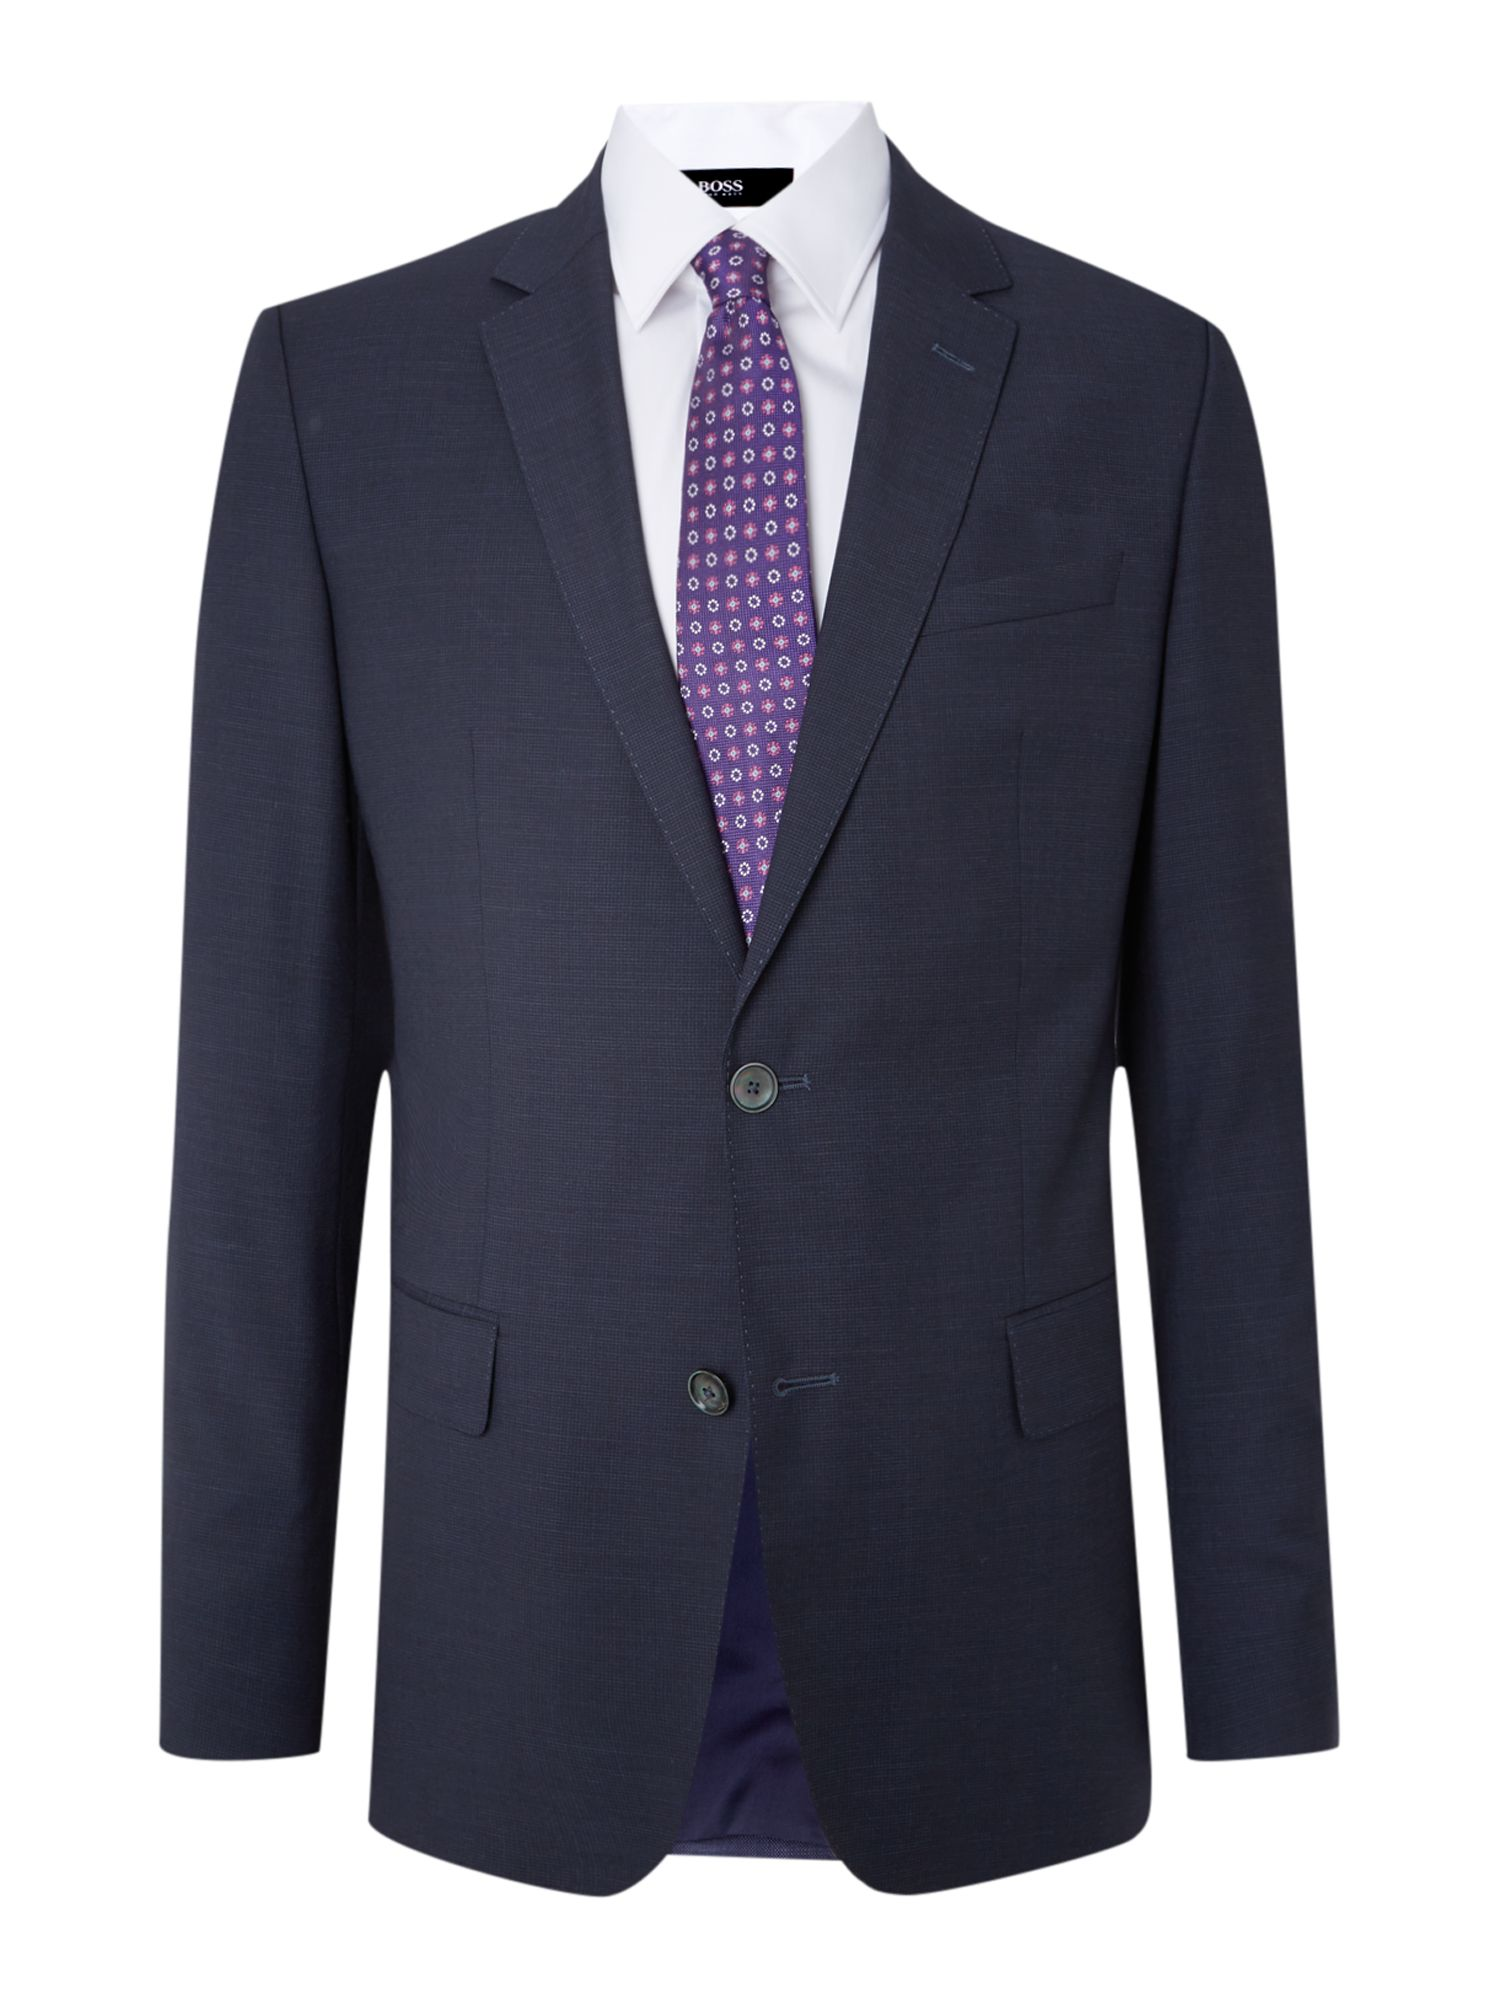 Hutson Gander slim fit subtle gingham suit